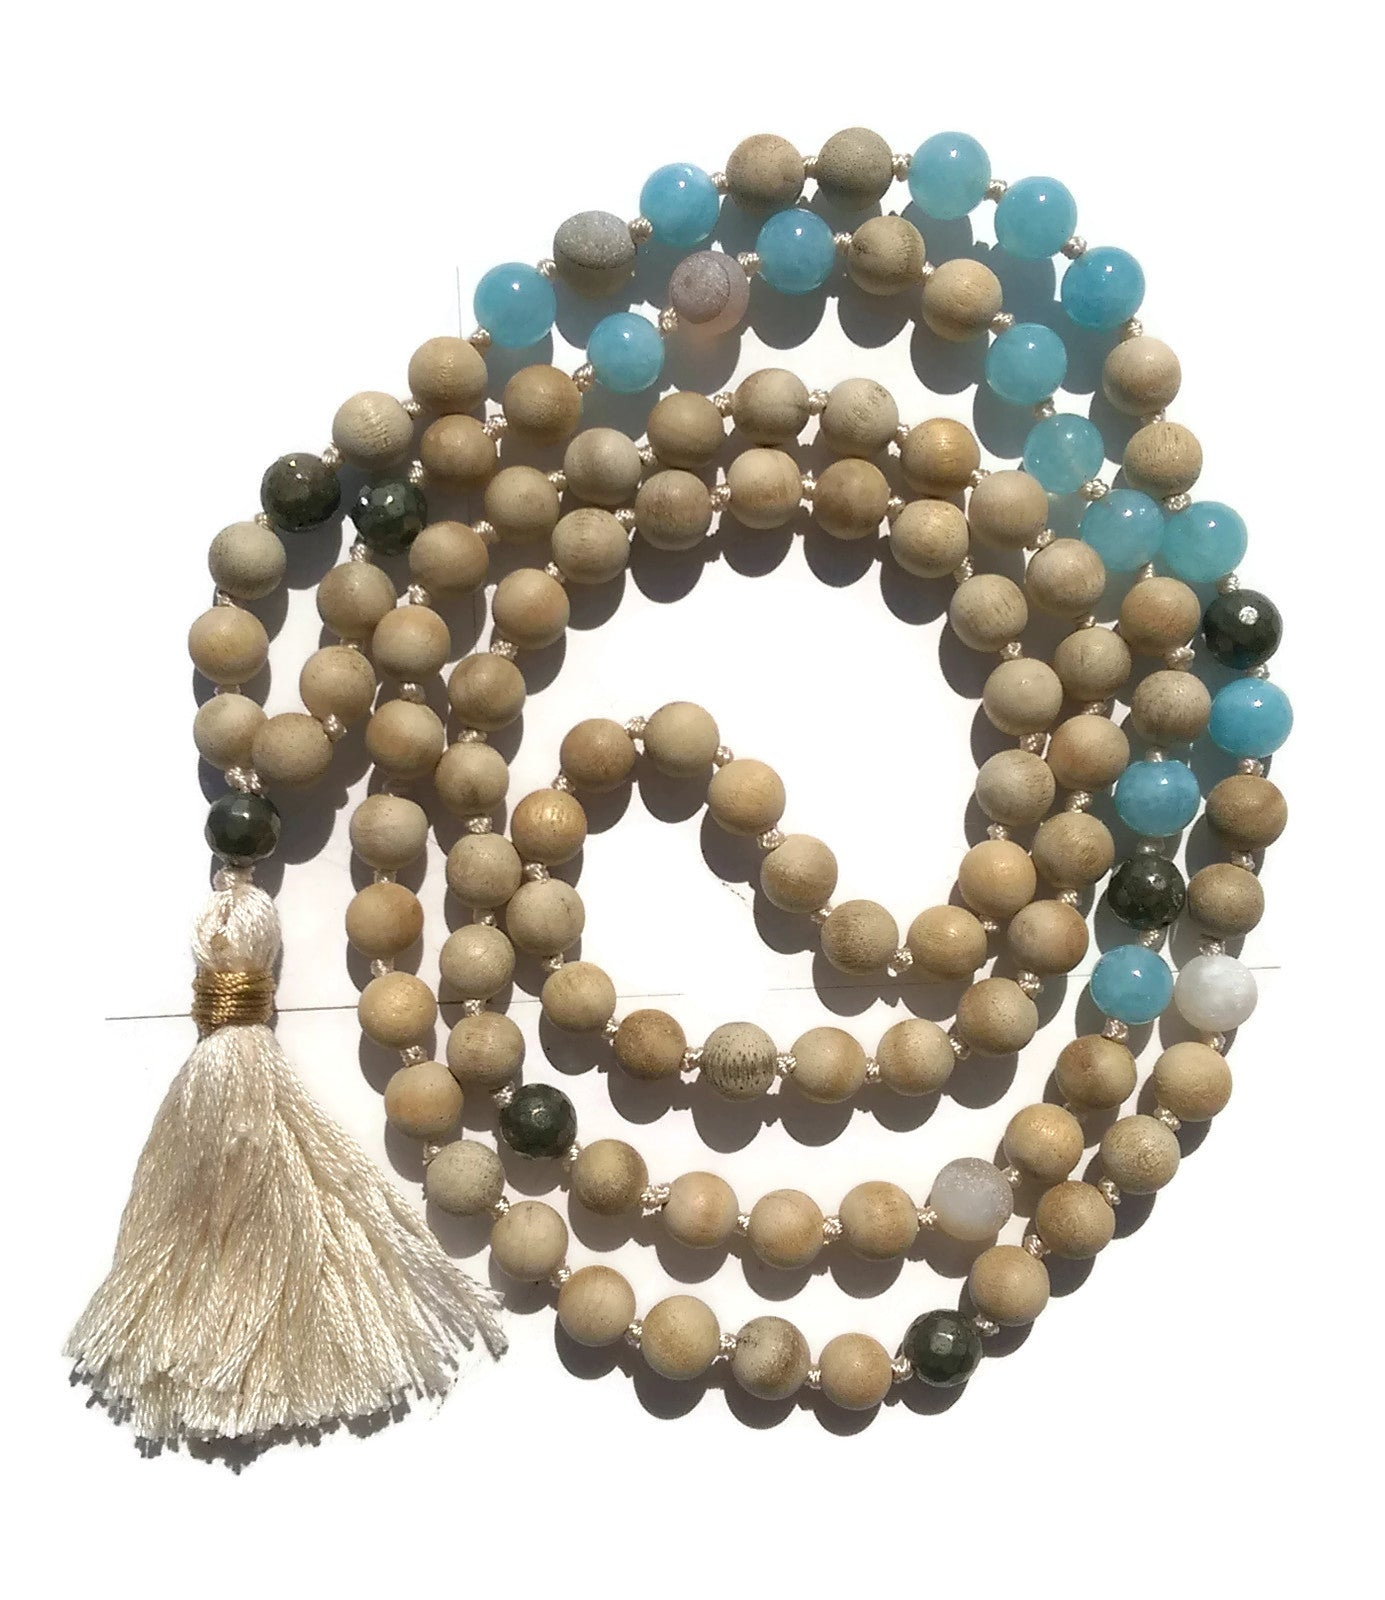 Pure Collection 8mm Sandalwood Aquamarine Labradorite Sardonyx Traditional Hand Knotted 108 Bead Meditation Mala Necklace Throat Chakra